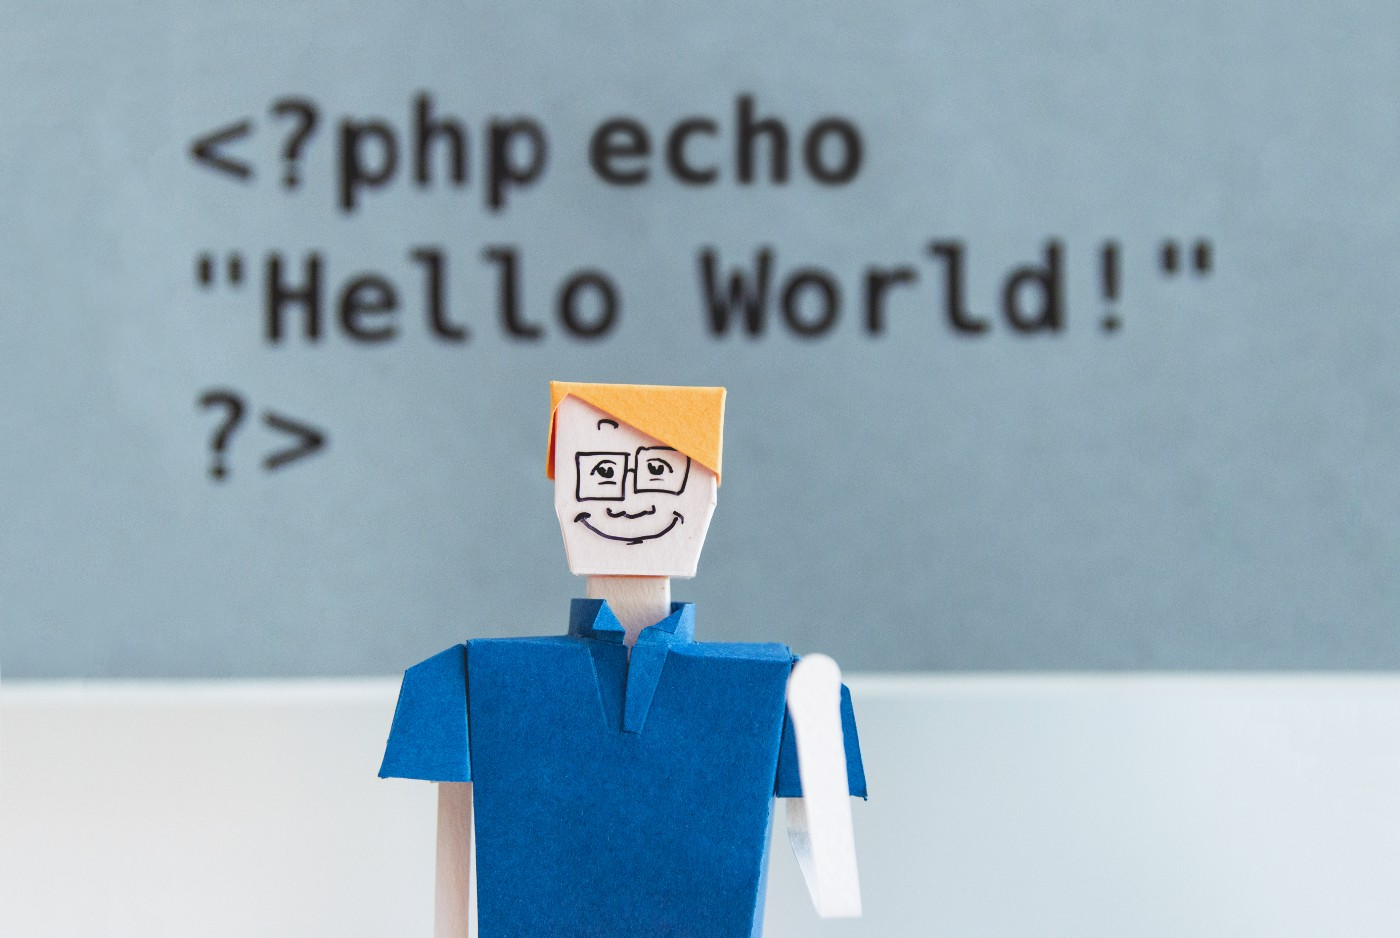 Image of a non-human funny character against the backdrop of a computer screen with code